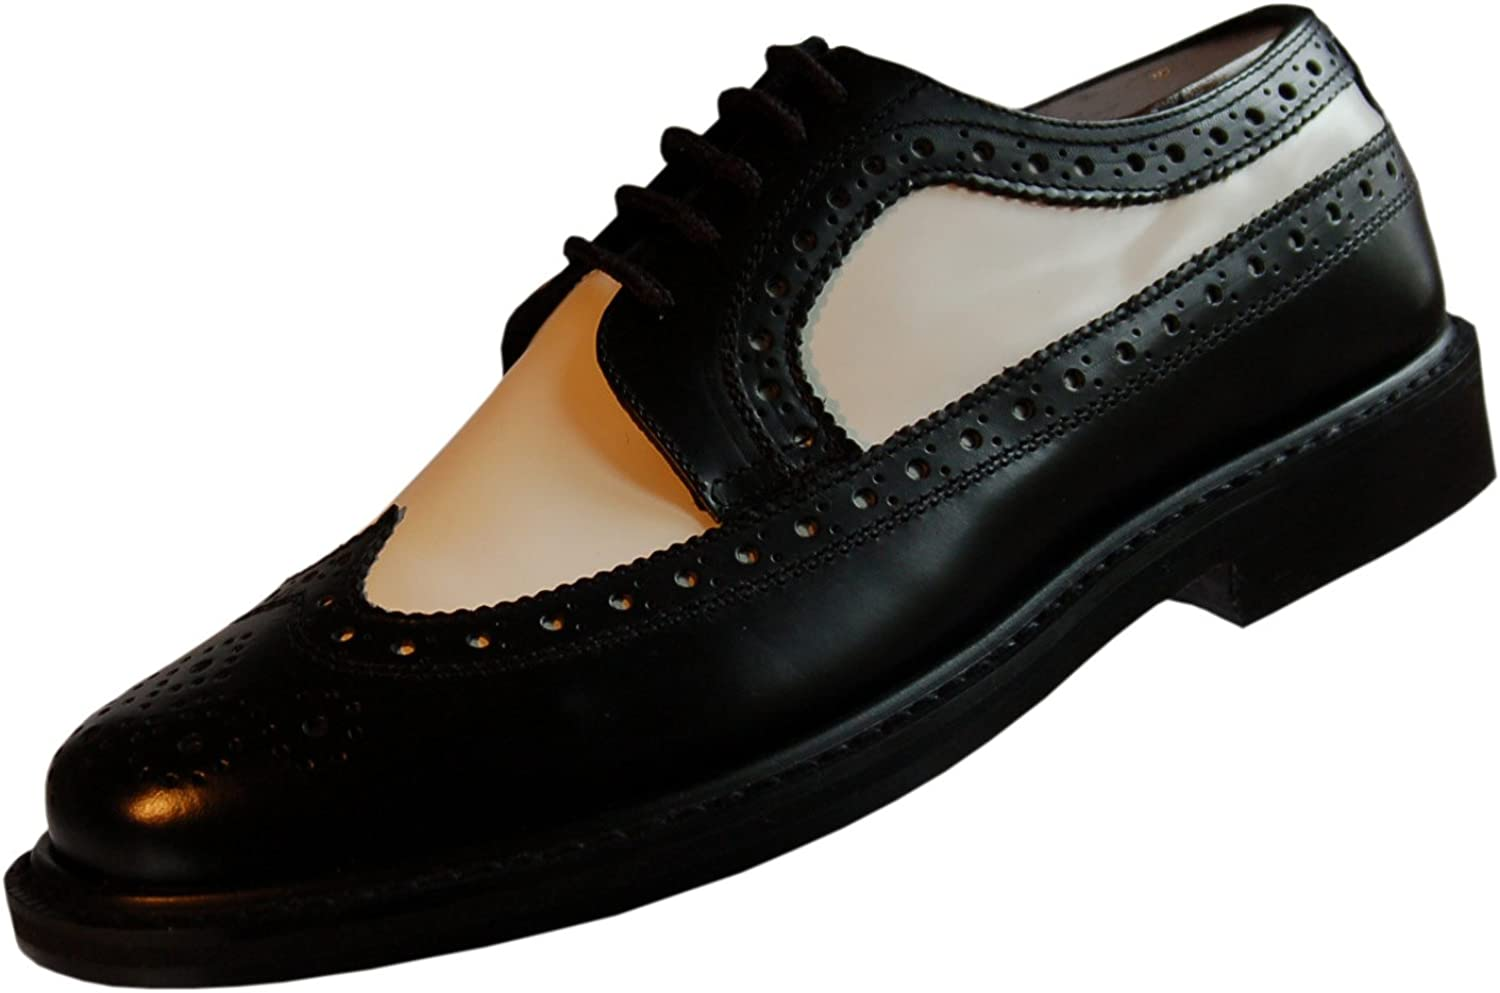 Brentano Men's Black and White Wingtips 1920s-1940s Vintage Style Leather Two Tone Brogue Spectator shoes